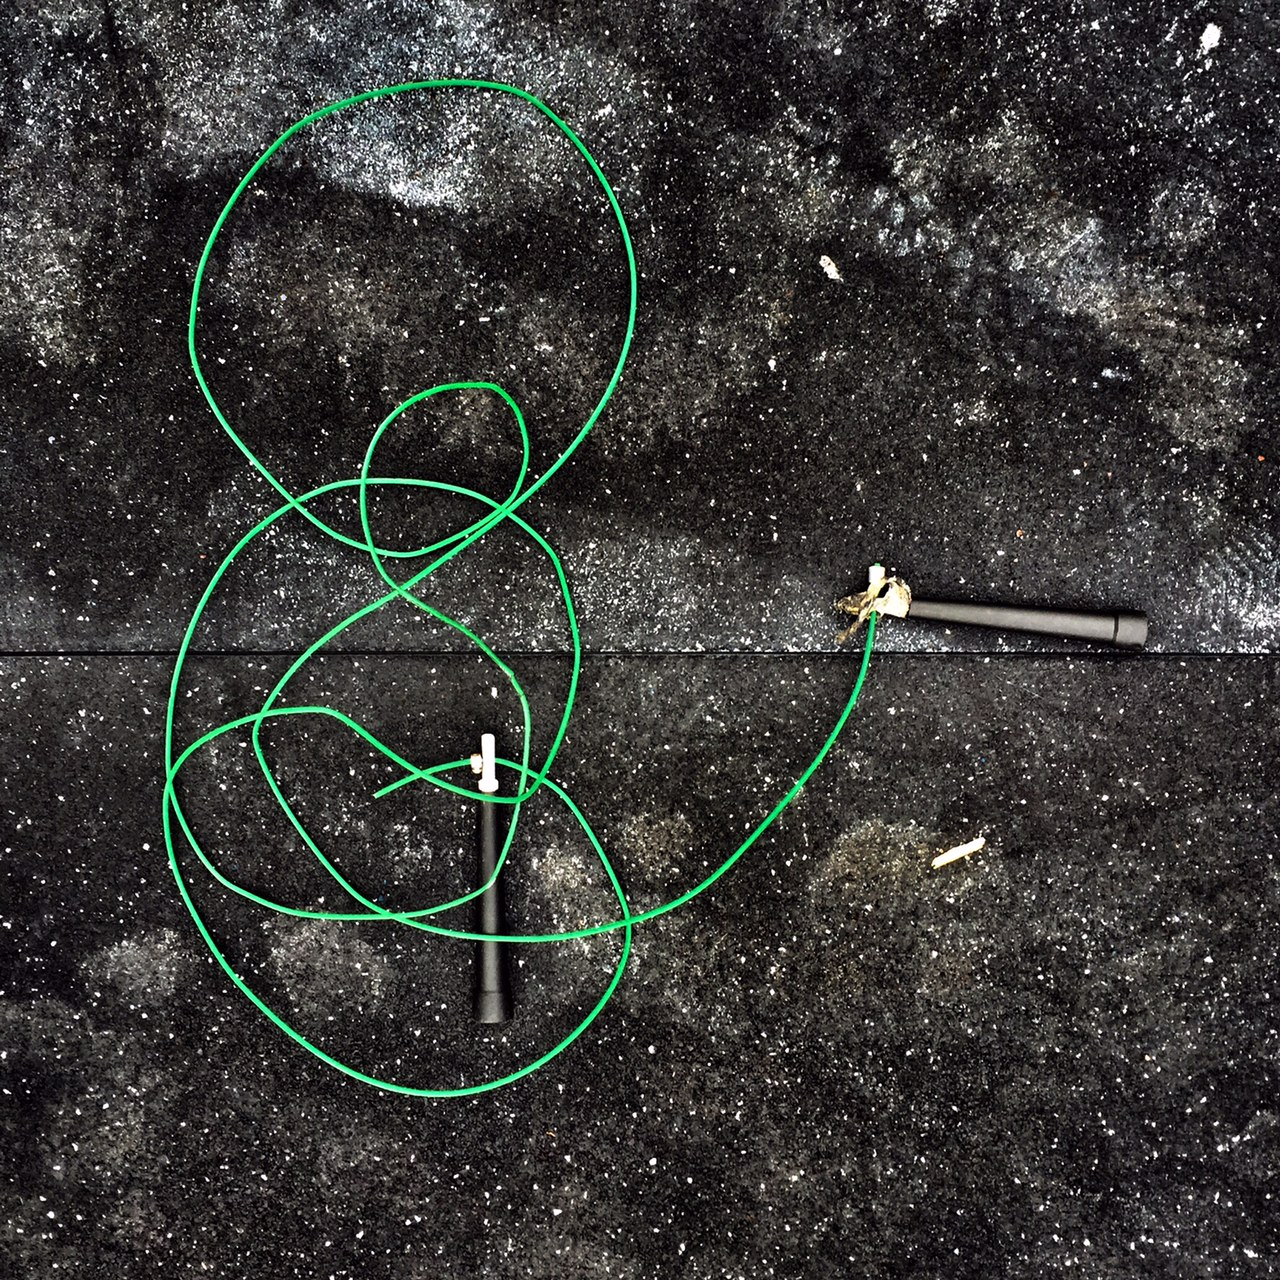 Jump Rope Baby.    Don't tie me up .  Photo by Rafael Vega